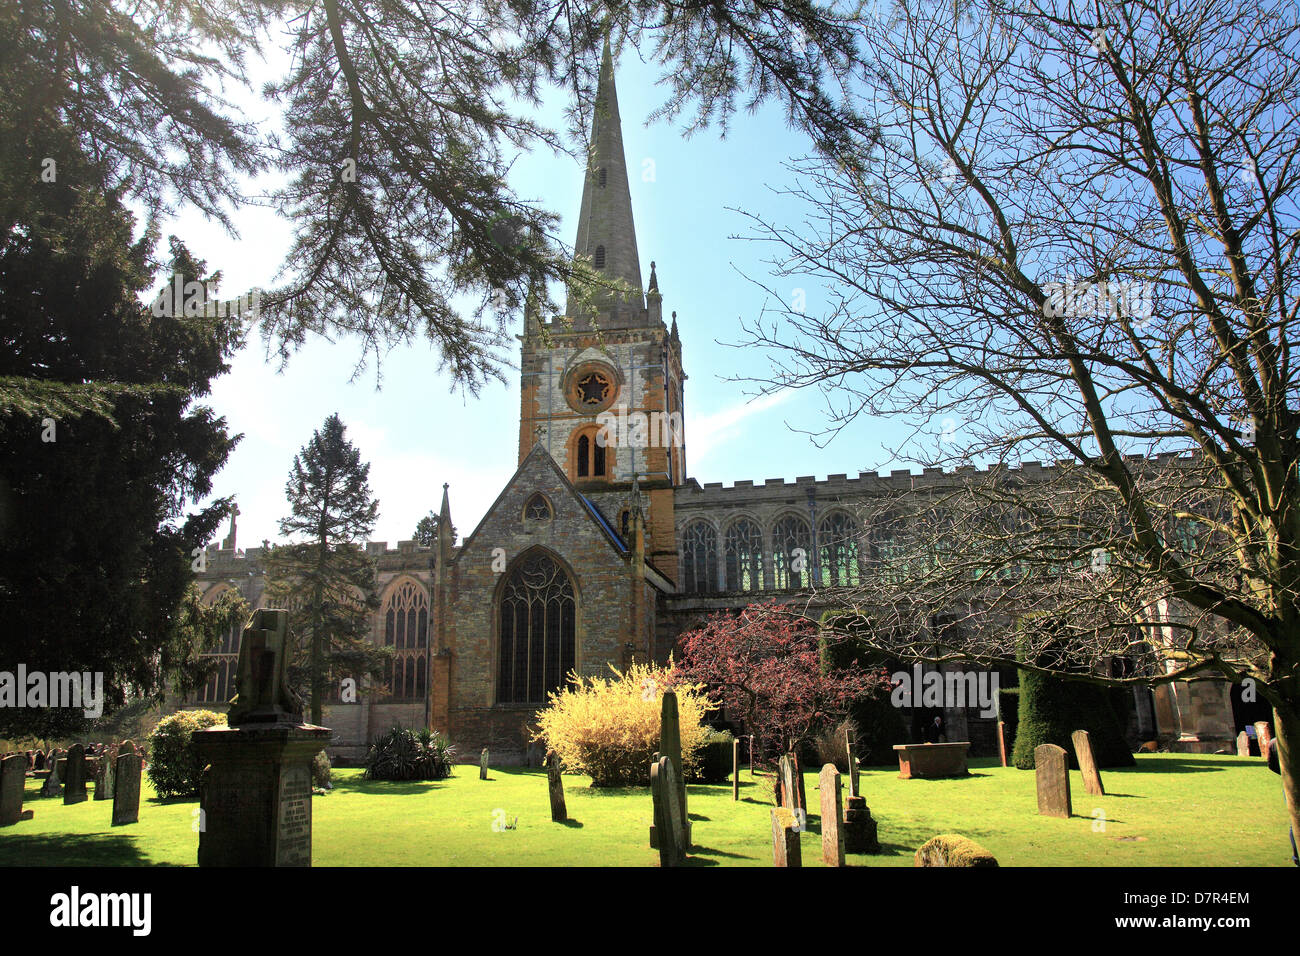 Collegiate Church of the Holy and Undivided Trinity, Stratford-upon-Avon is a Grade I   listed parish church - Stock Image